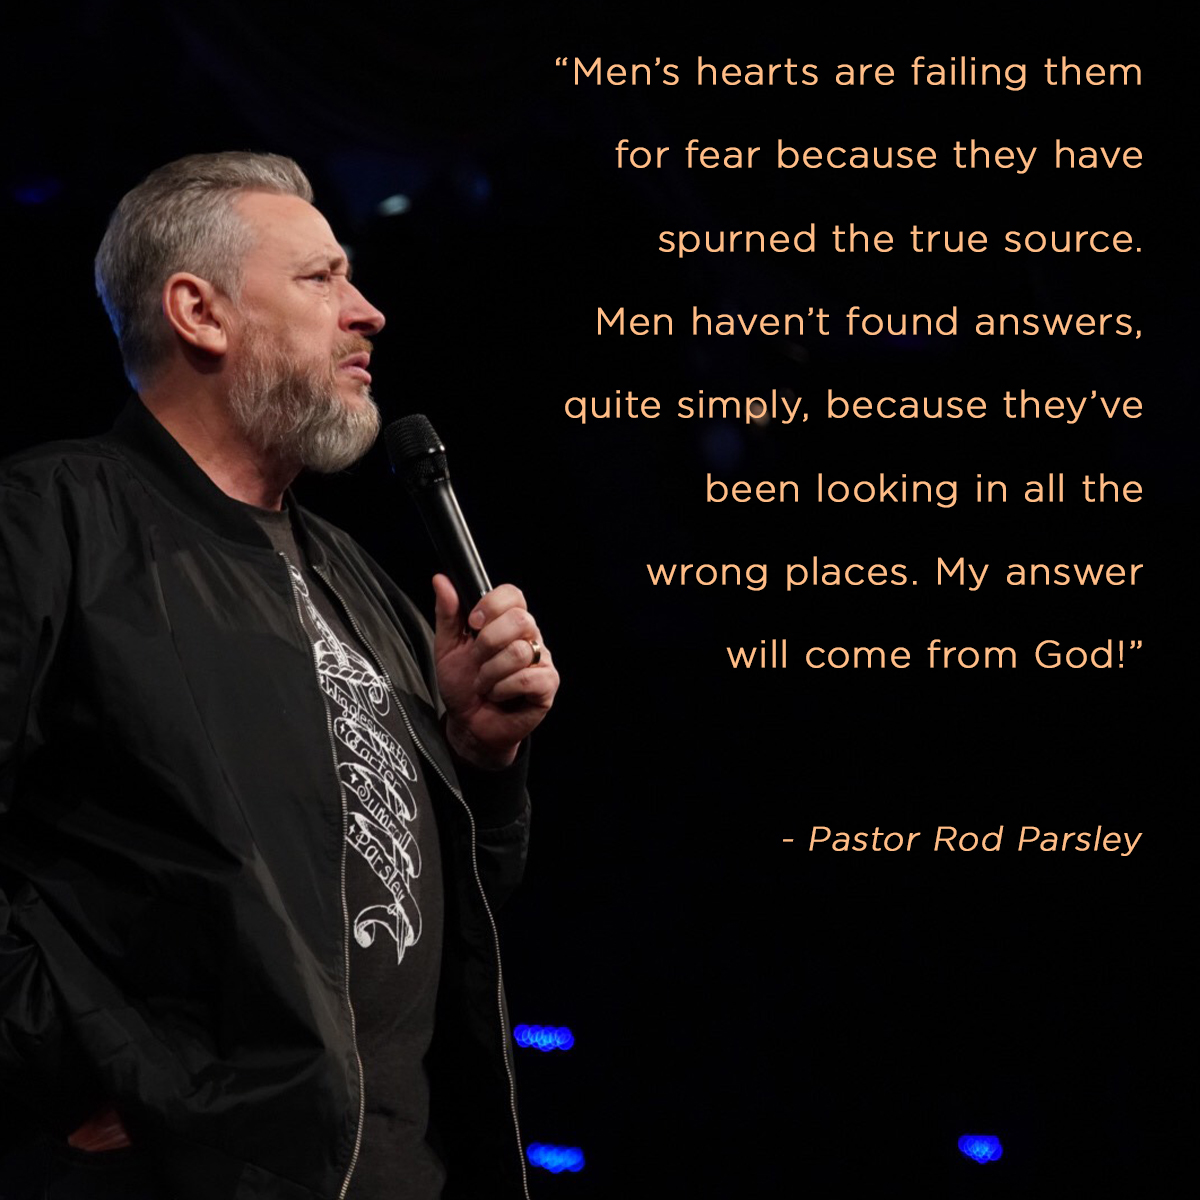 """Mens' hearts are failing them for fear because they have spurned the true source. Men haven't found answers, quite simply, because they've been looking in all the wrong places. My answer will come from God!"" – Pastor Rod Parsley"